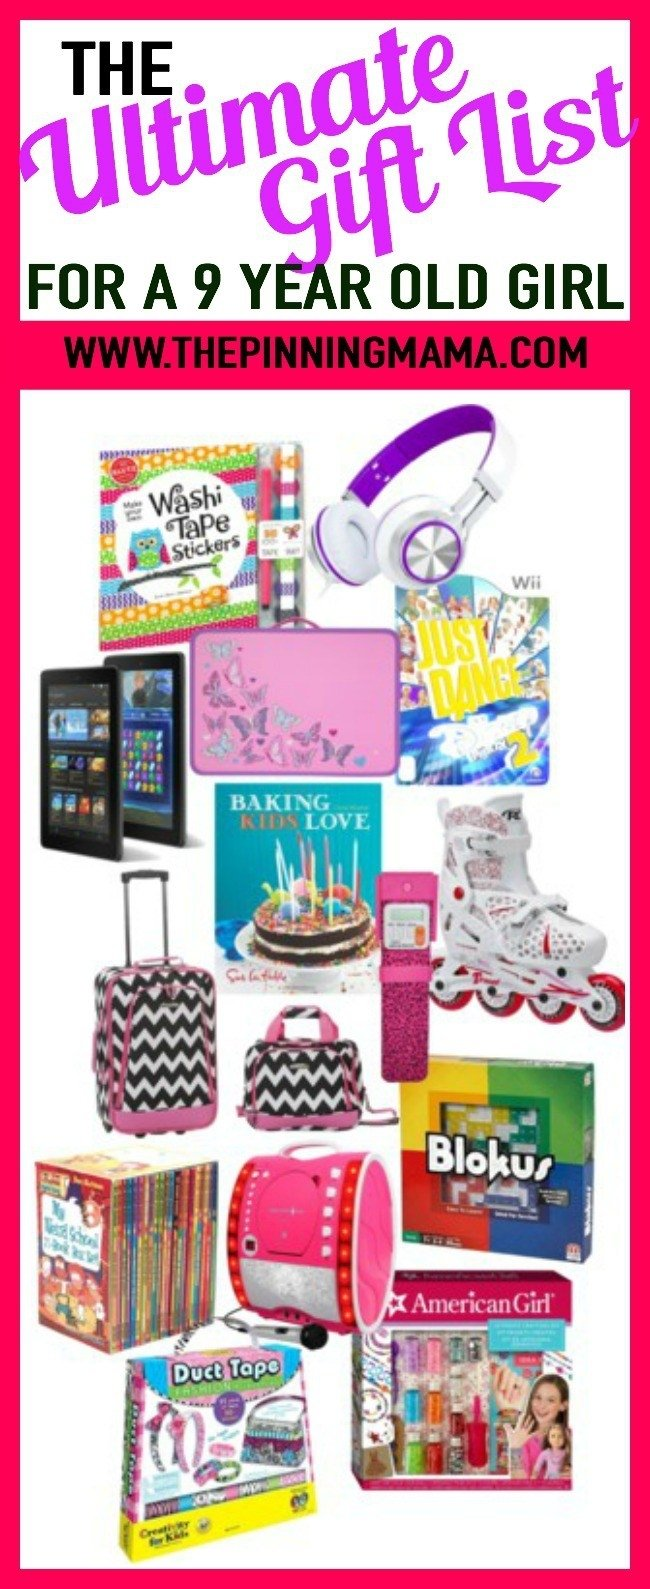 10 Trendy Gift Ideas For Boys Age 9 the ultimate gift list for a 9 year old girl top toys girls age 9 3 2021